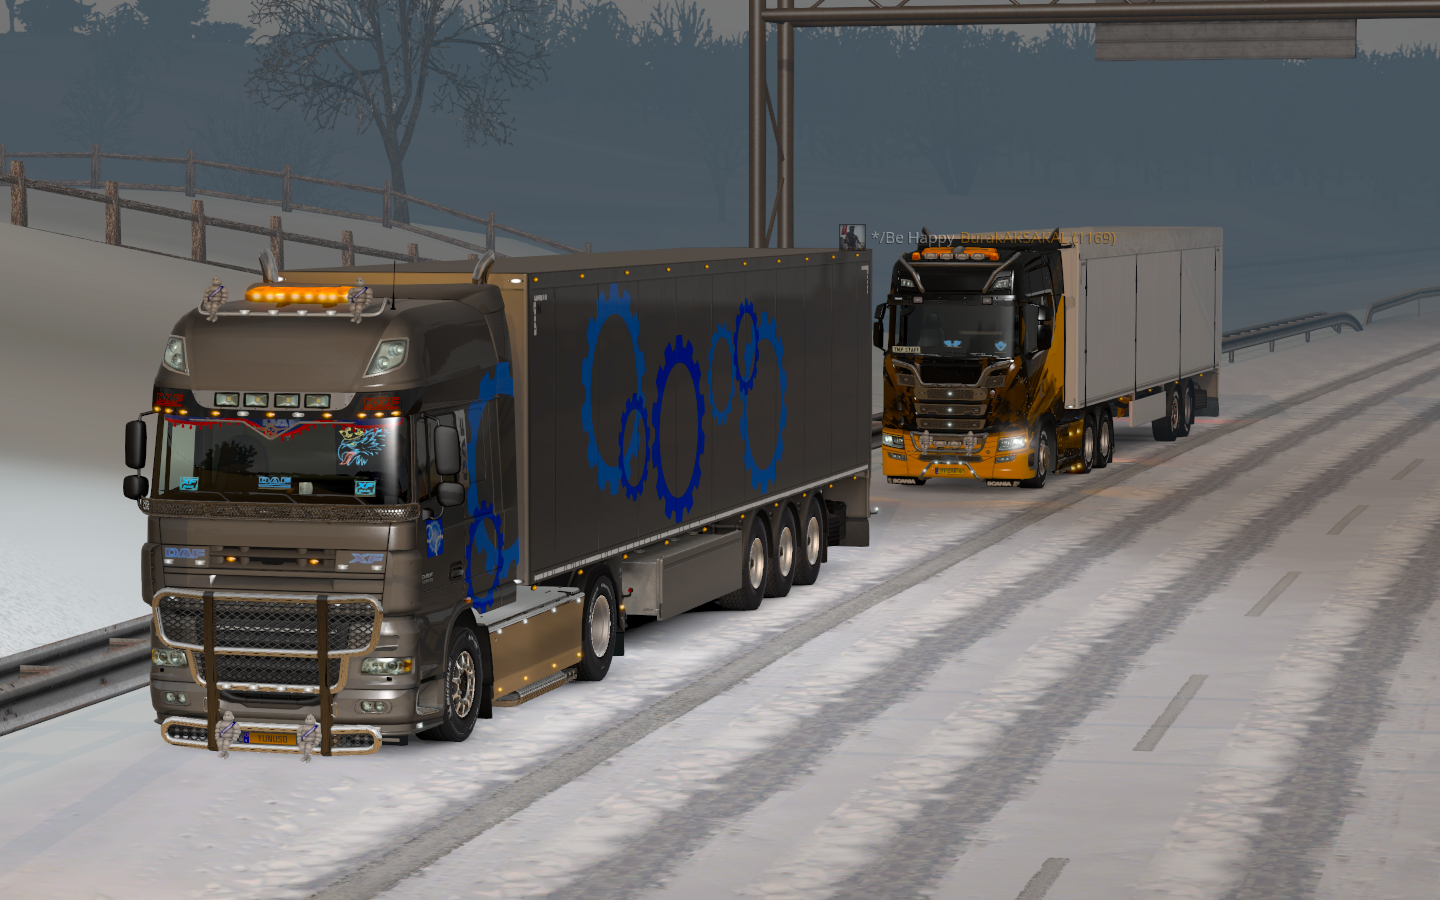 ets2_20190121_041309_00.png